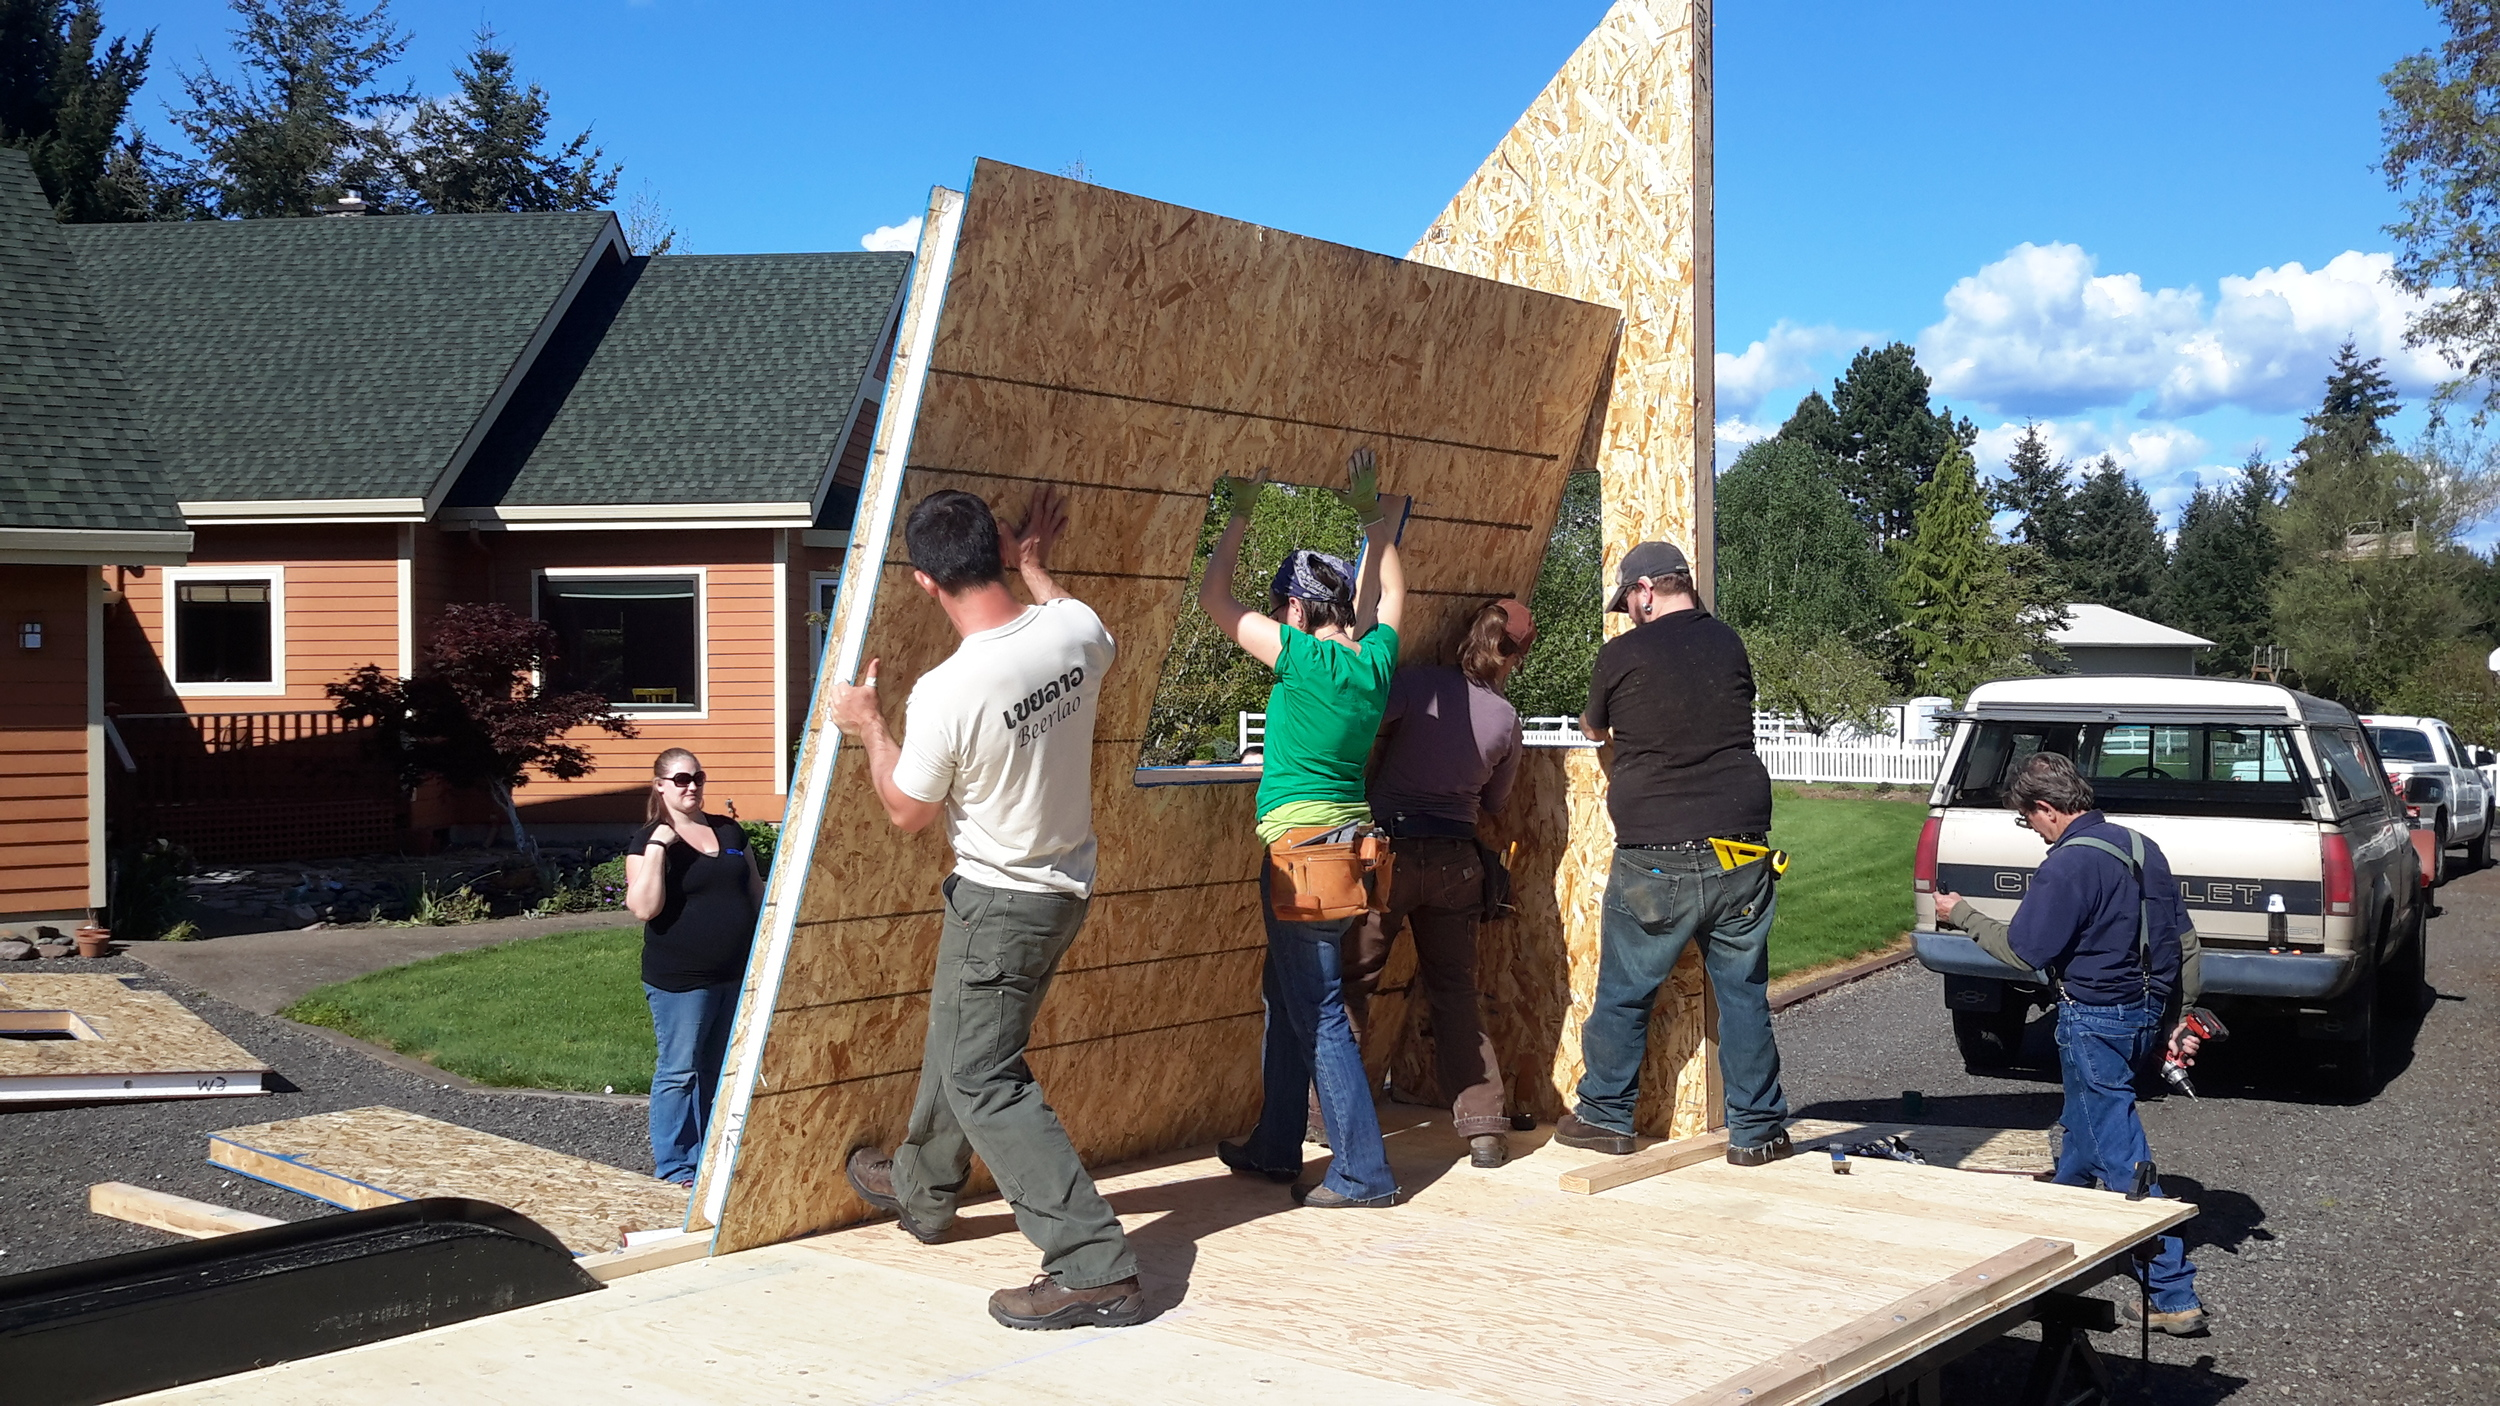 SIPs Wall Raising during a Build Blitz in Spring 2015